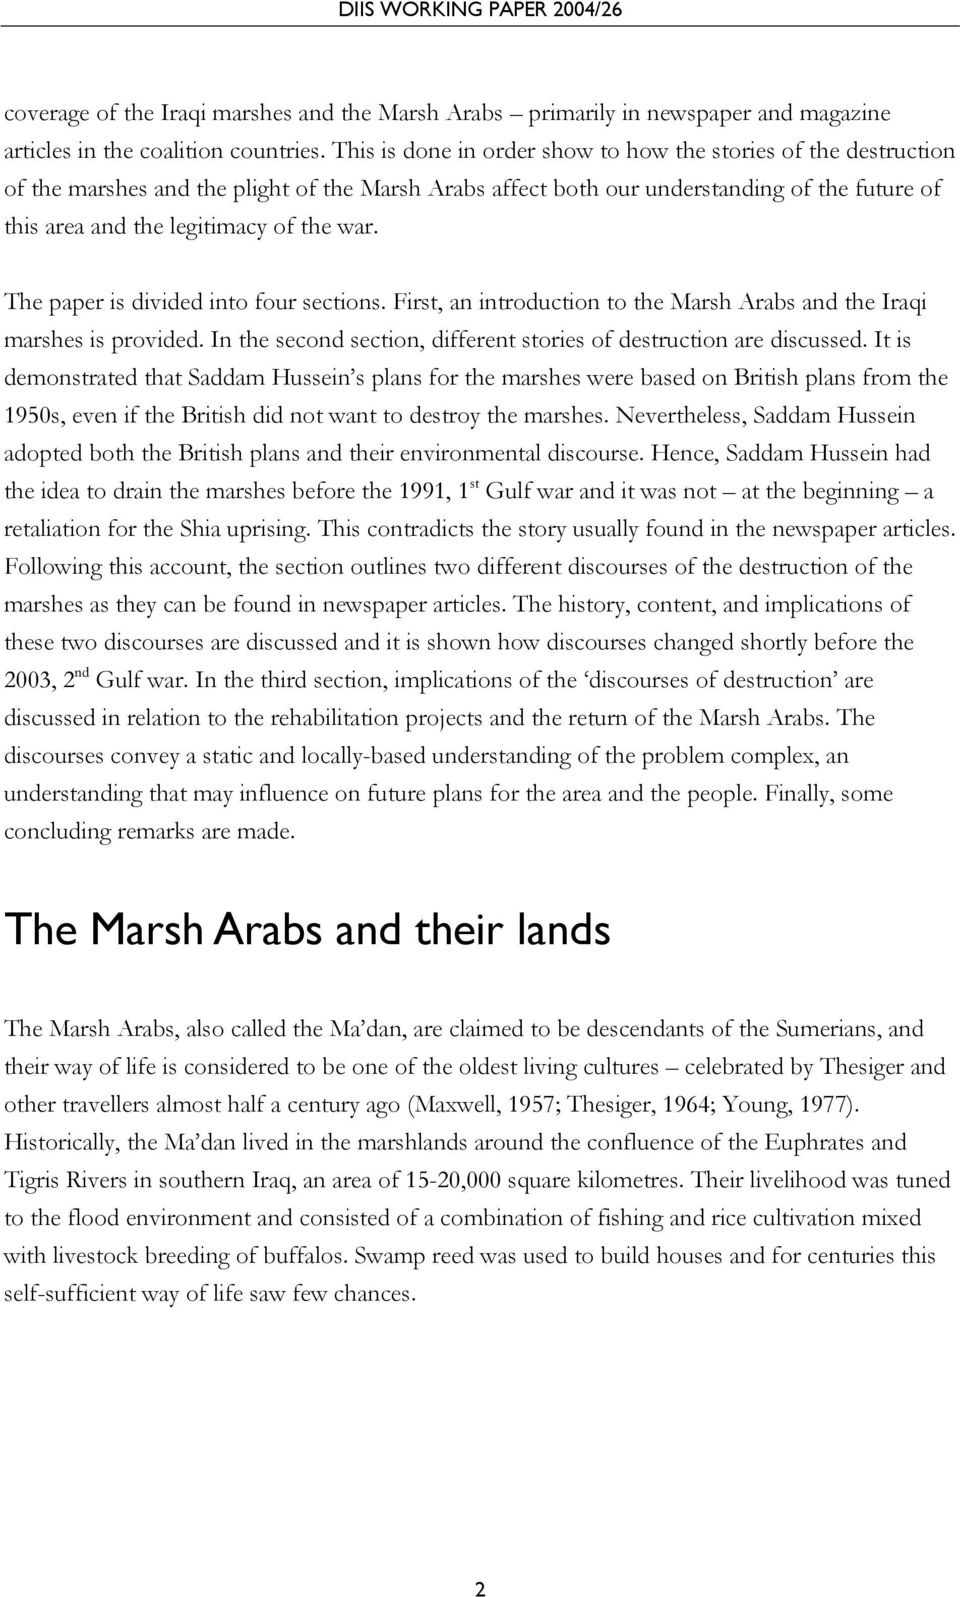 war. The paper is divided into four sections. First, an introduction to the Marsh Arabs and the Iraqi marshes is provided. In the second section, different stories of destruction are discussed.